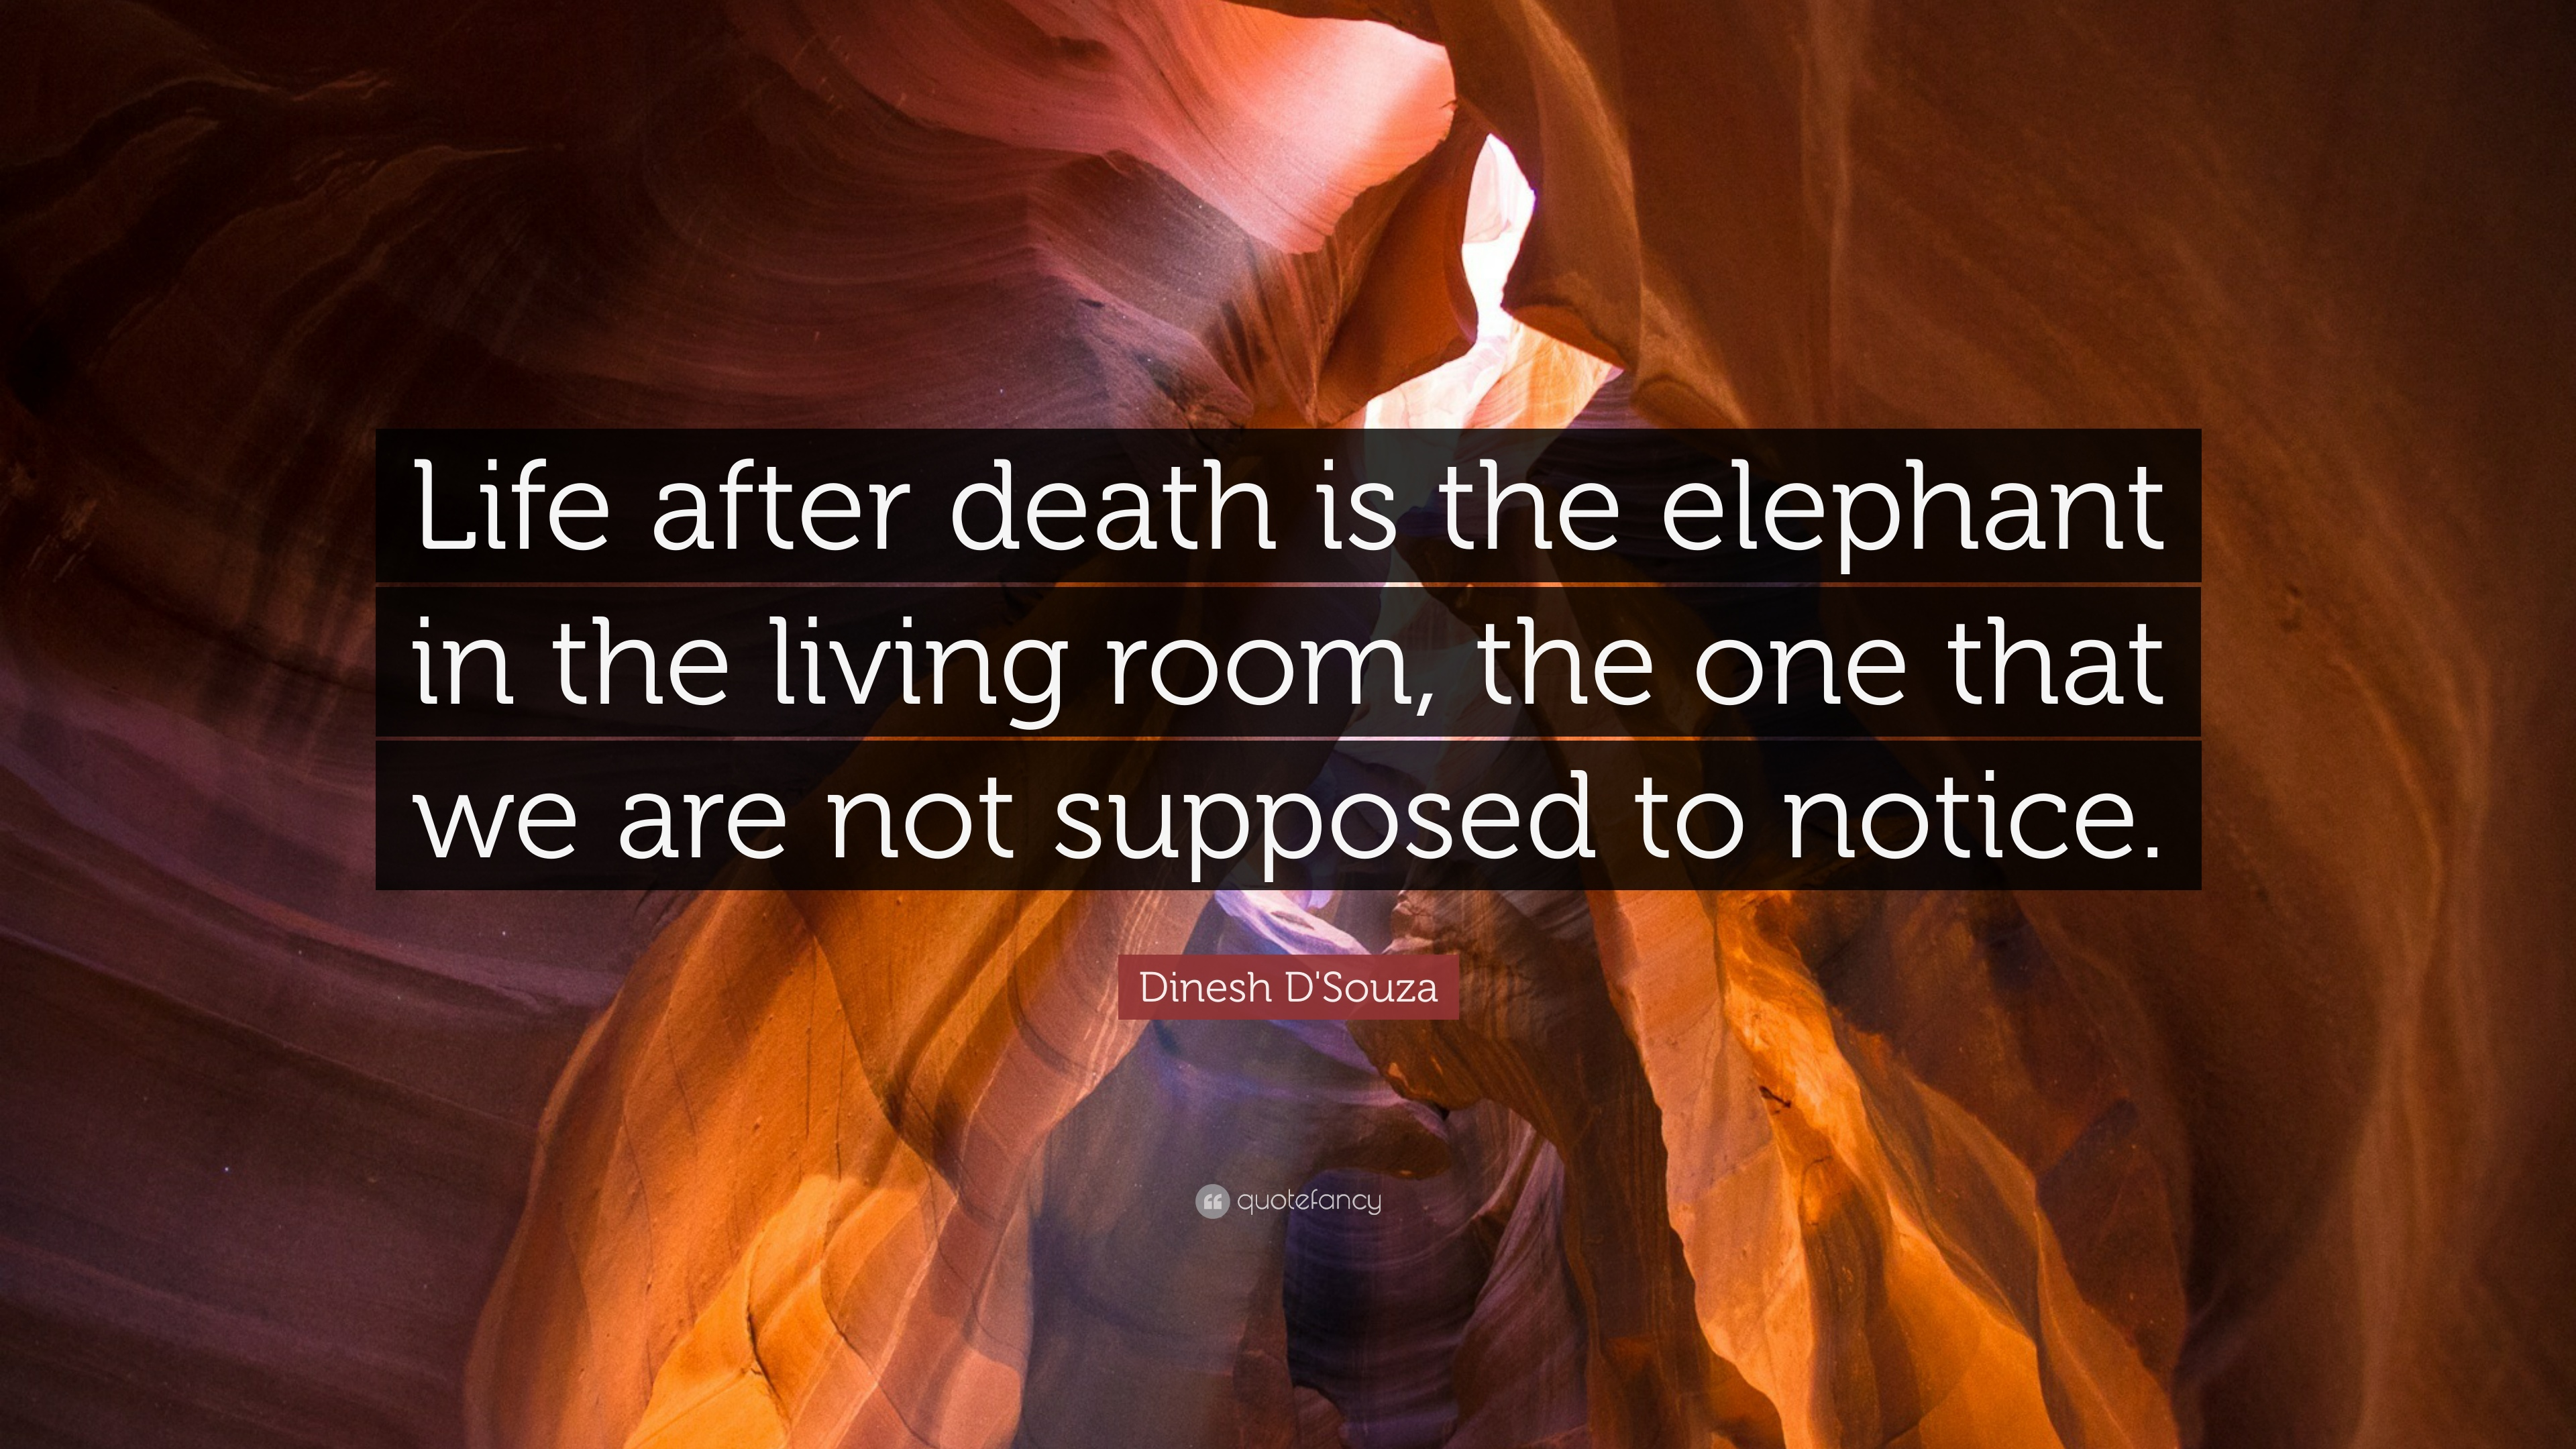 dinesh dsouza quote life after death is the elephant in the living - The Elephant In The Living Room